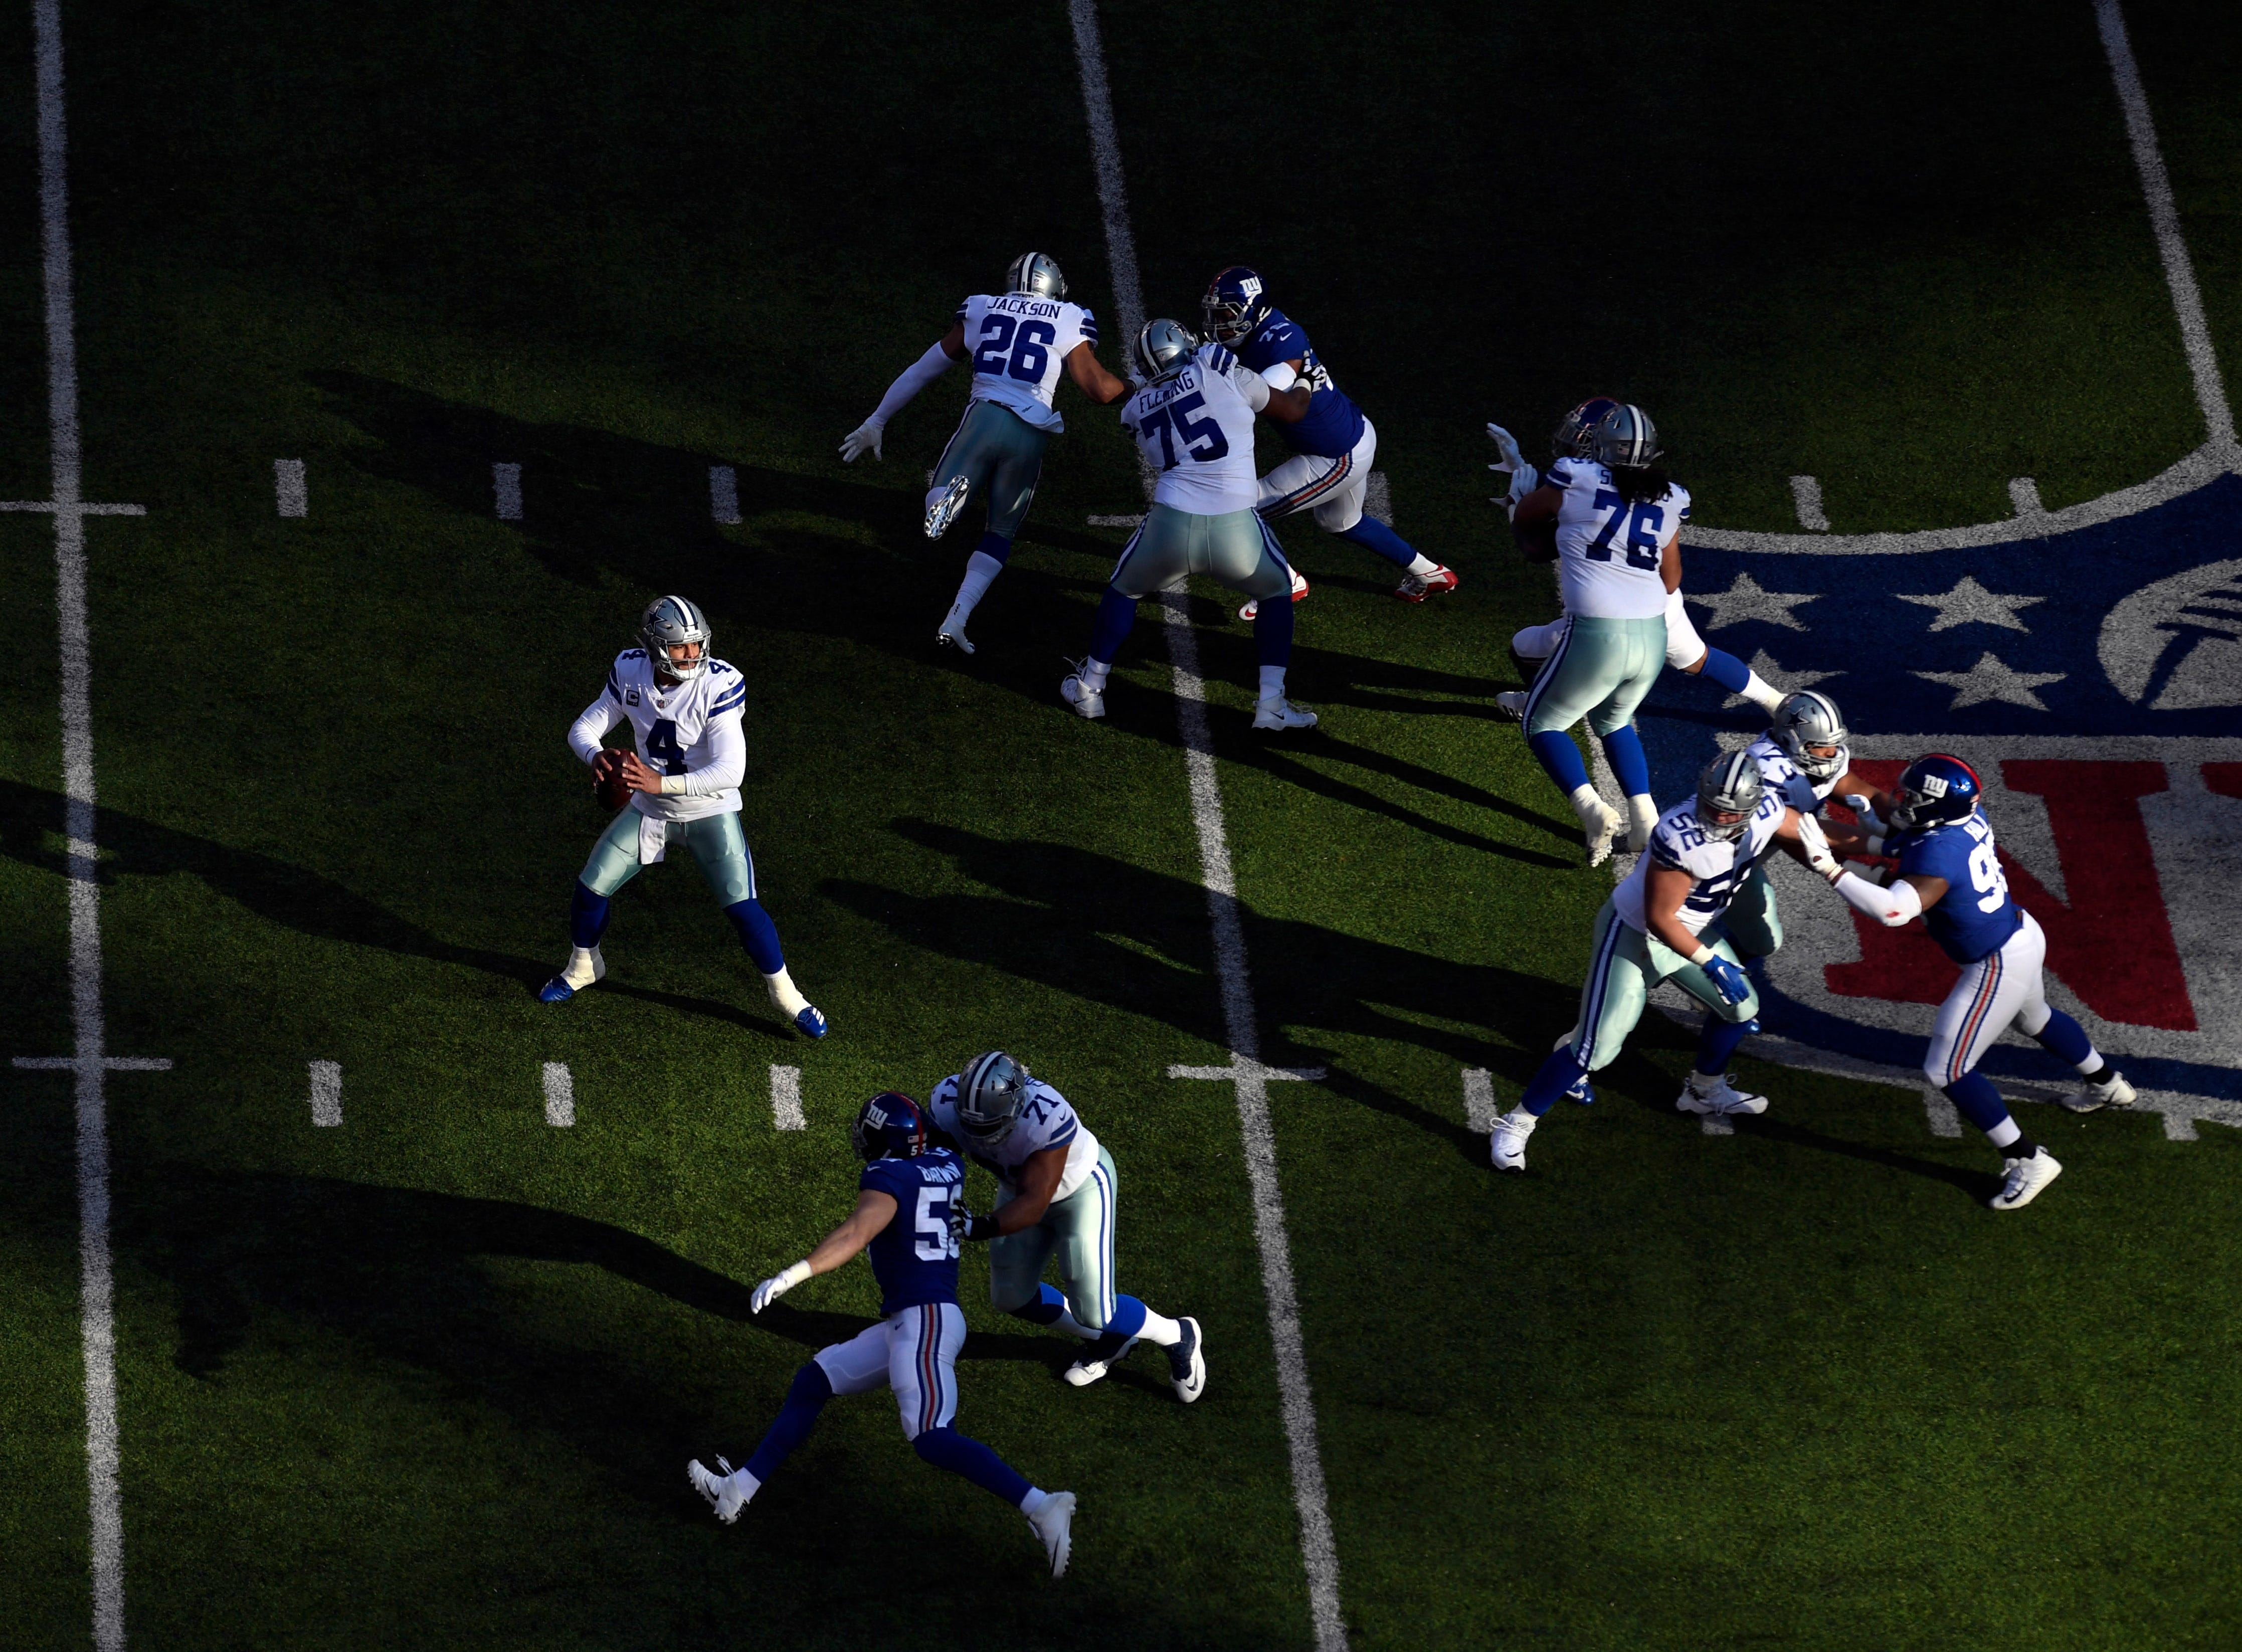 Dallas Cowboys quarterback Dak Prescott (4) and the Cowboys face the New York Giants in the first half on Sunday, Dec. 30, 2018, in East Rutherford.